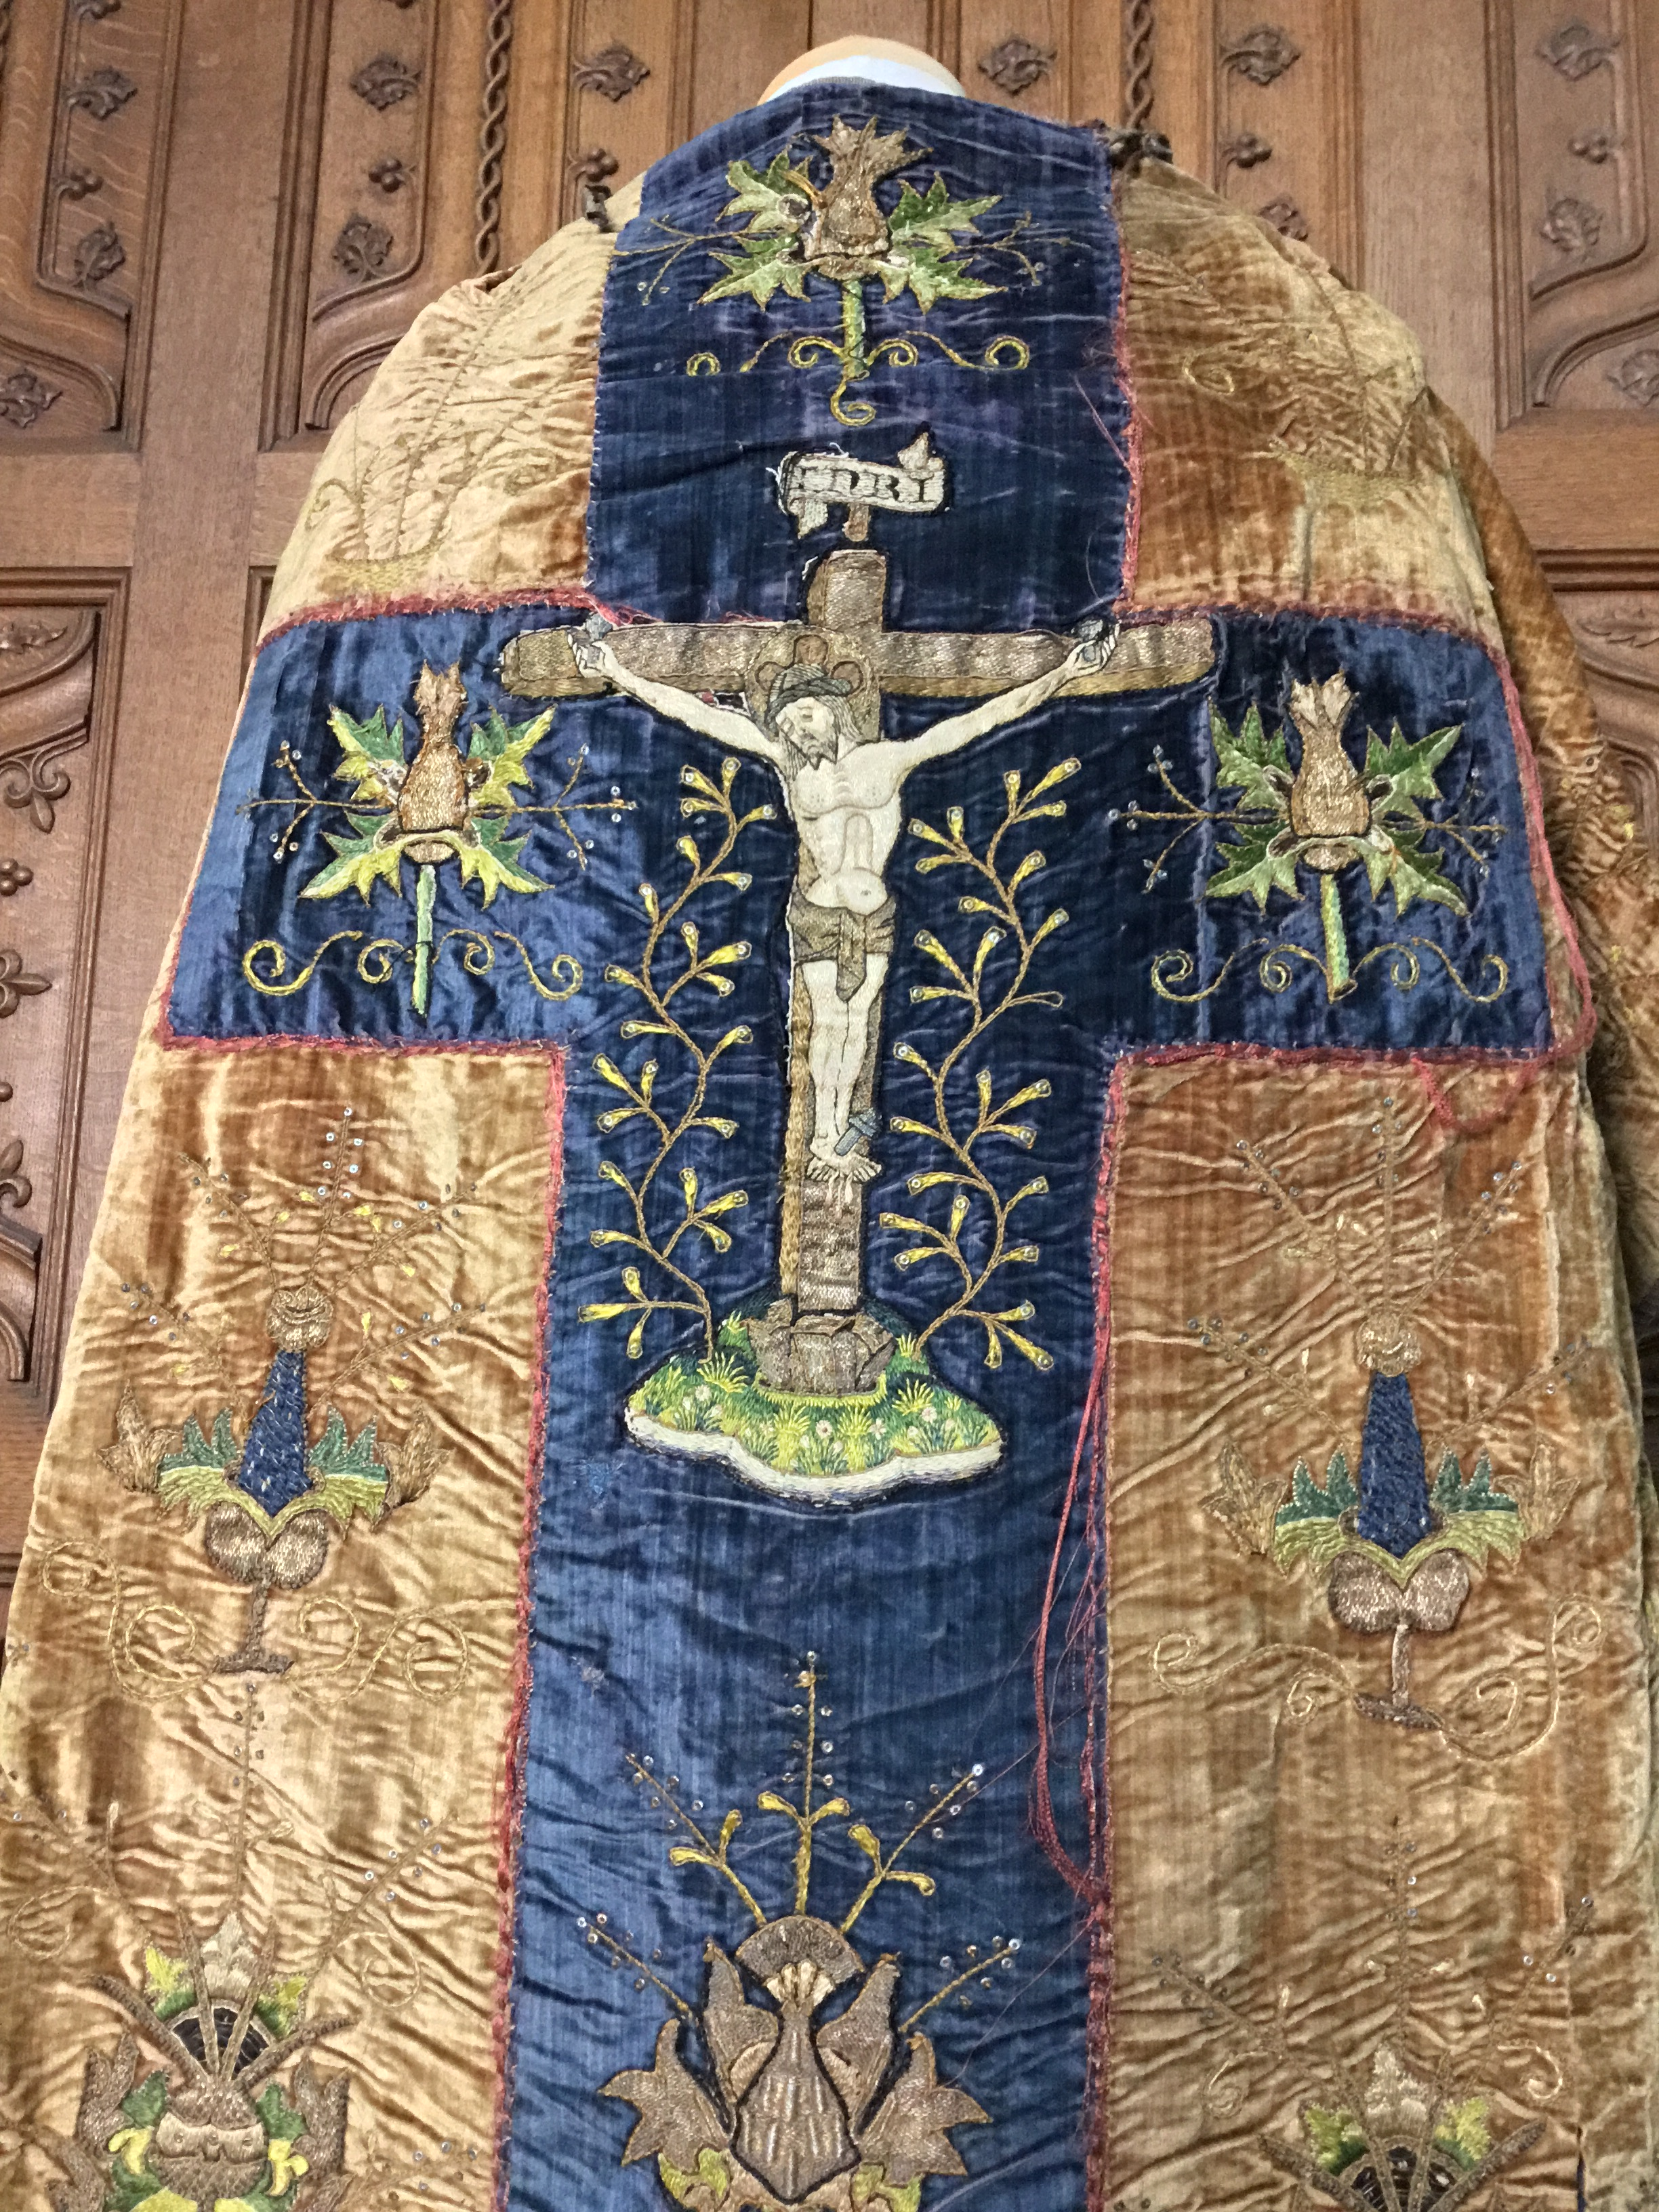 Embroidered Jesus on the cross cloak